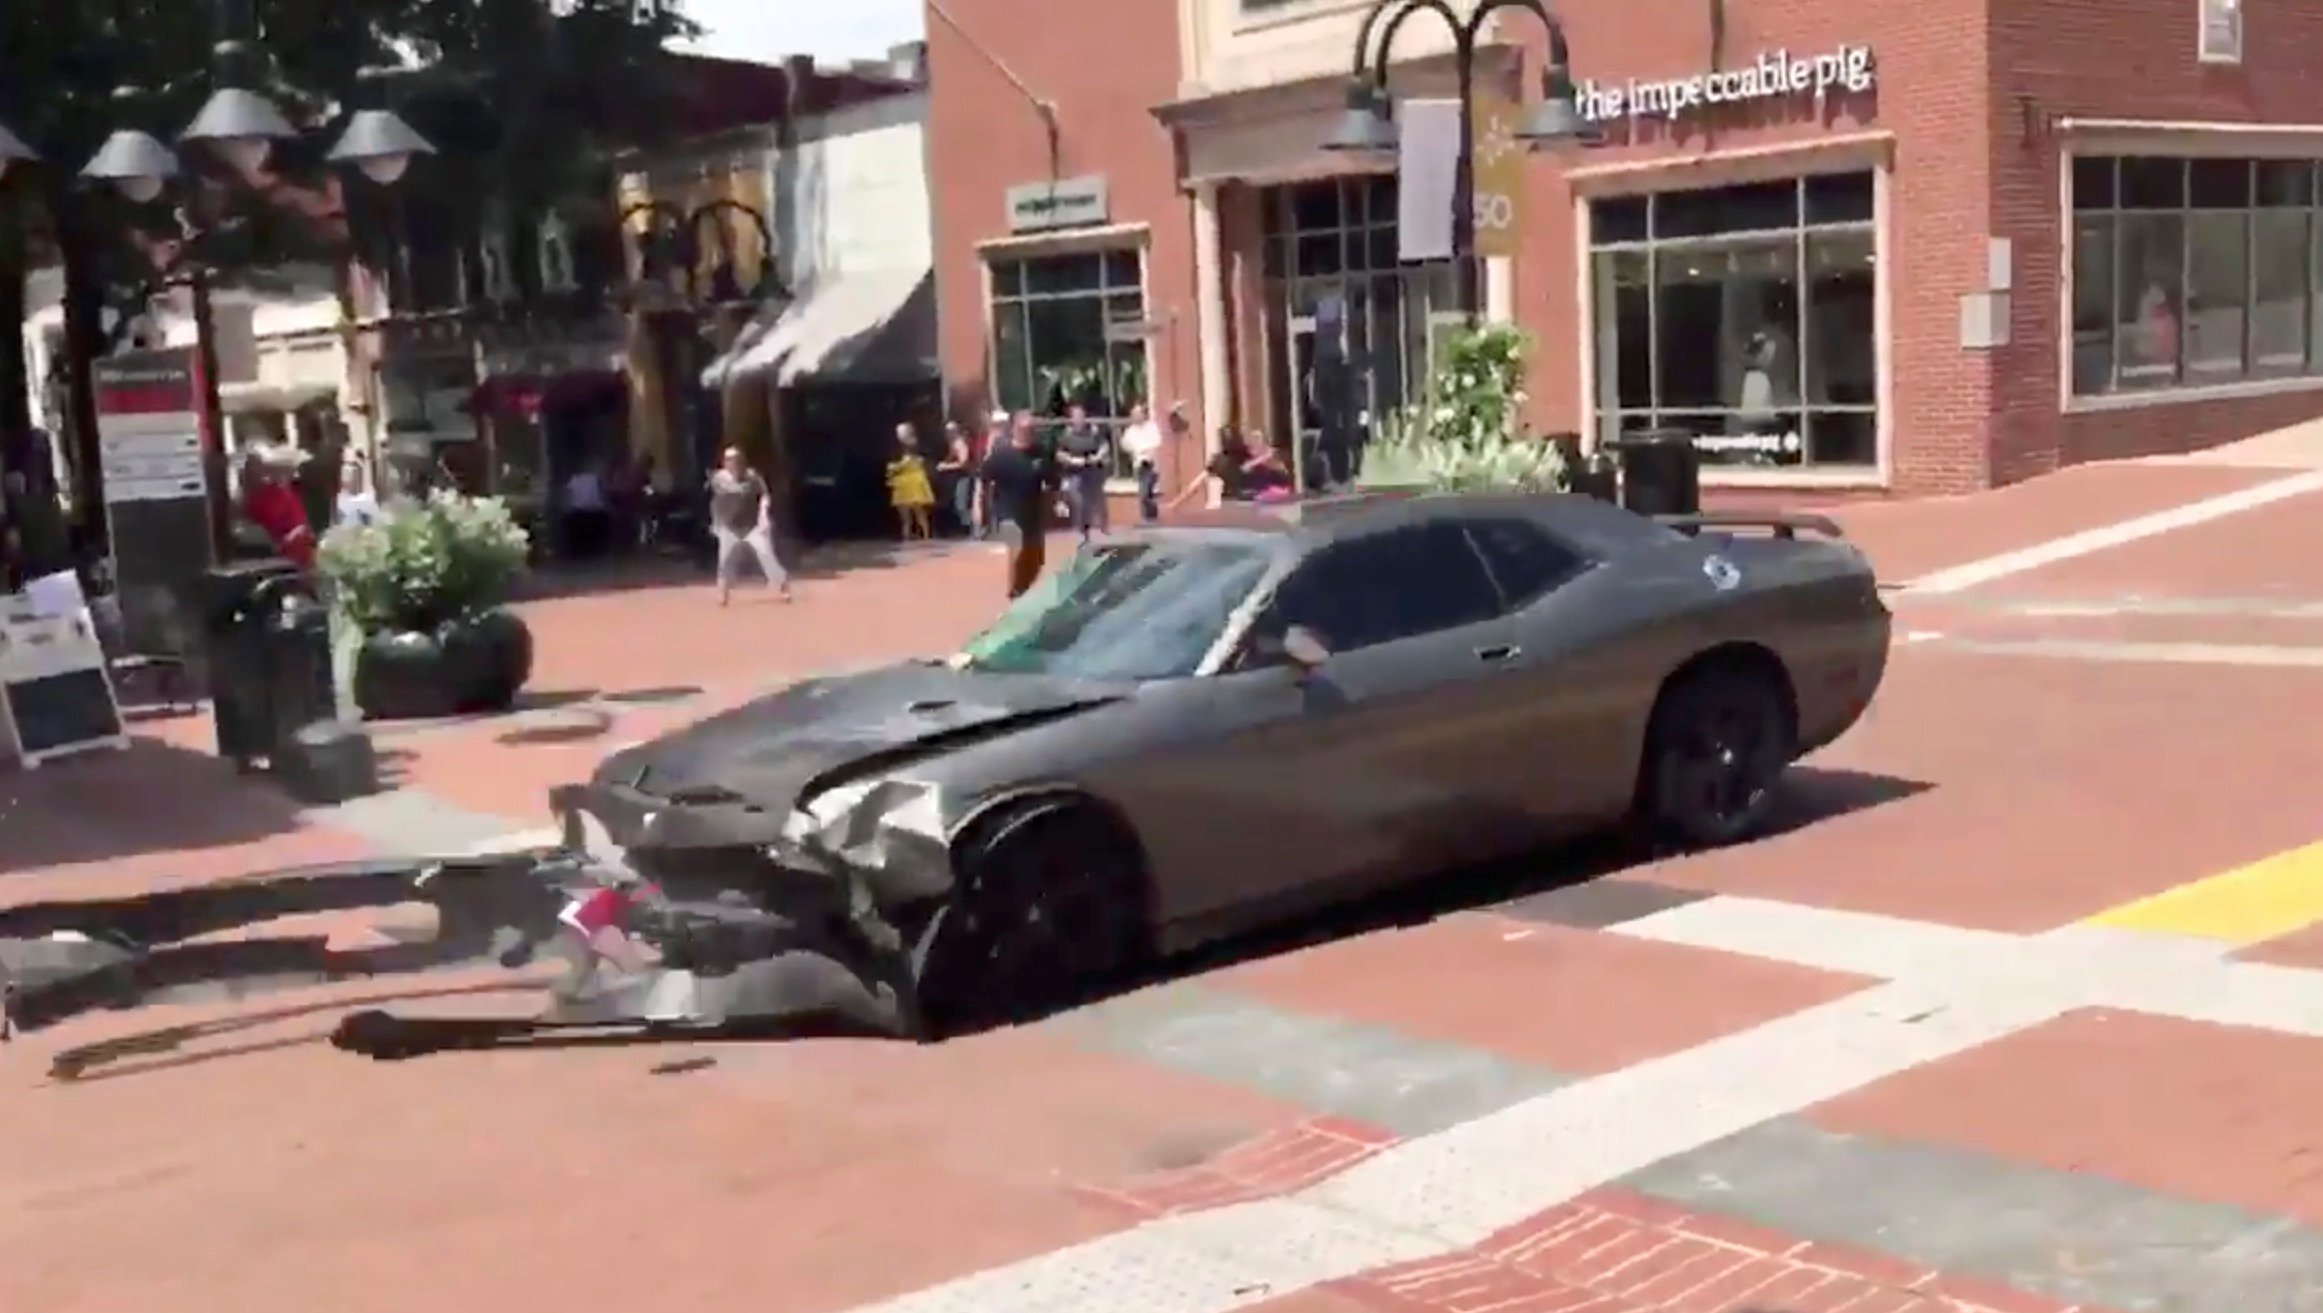 A vehicle is seen reversing after plowing into the crowd gathered on a street in Charlottesville, Virginia, U.S., after police broke up a clash between white nationalists and counter-protesters, August 12, 2017, in this still image from a video obtained from social media. Courtesy of Brennan Gilmore